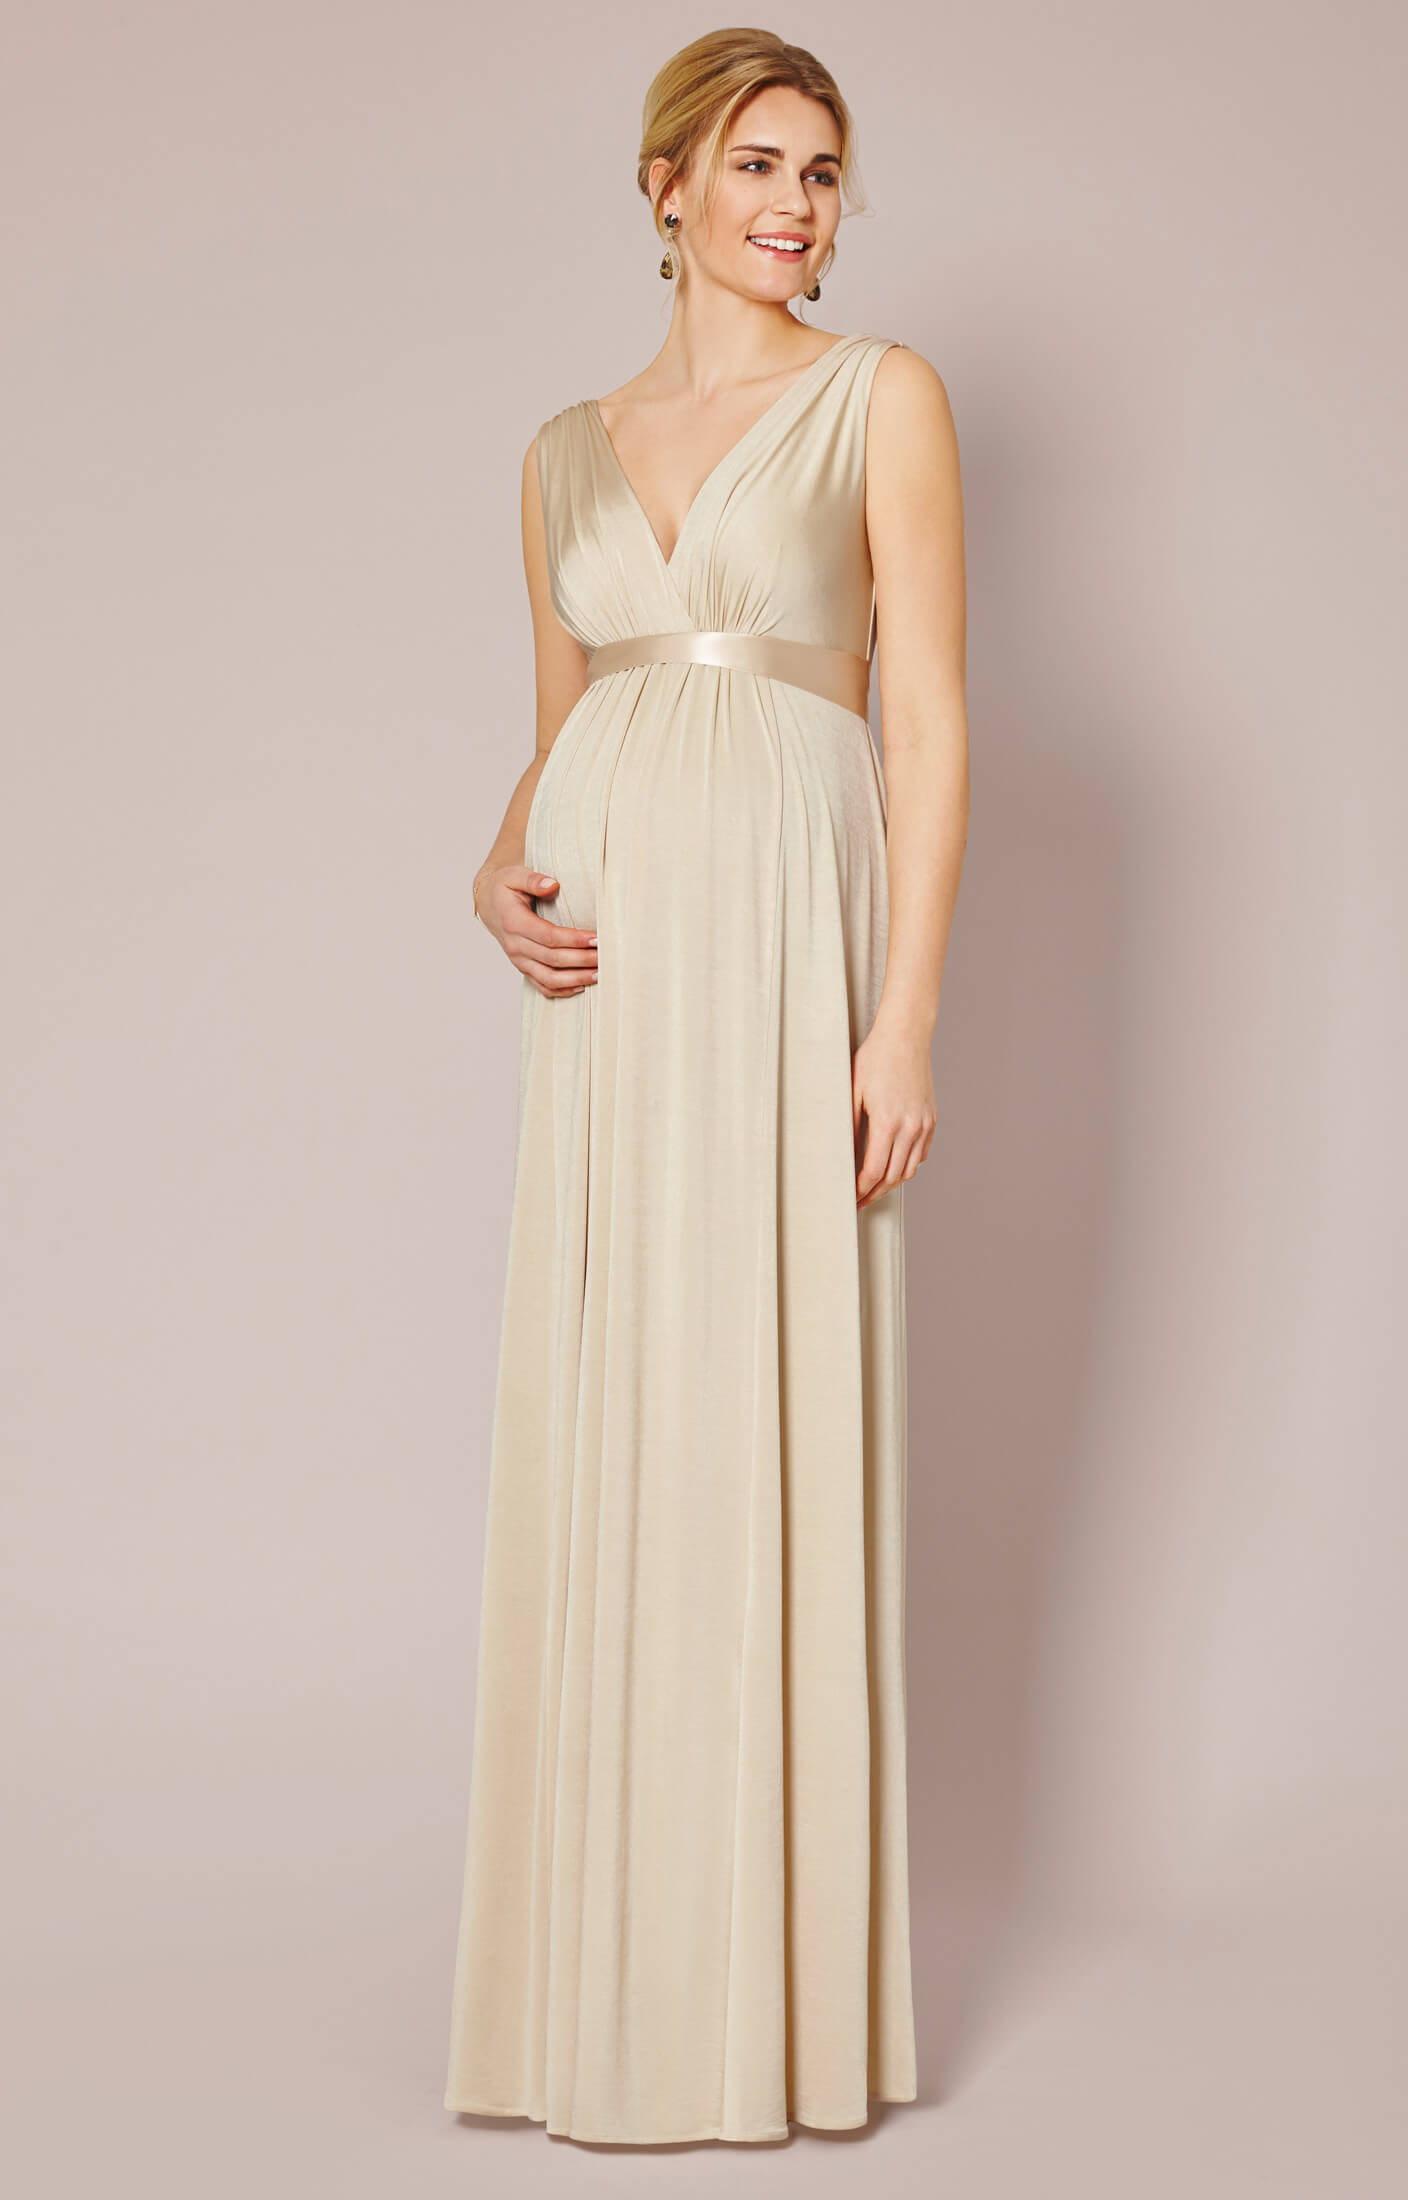 Anastasia Maternity Gown (Gold Dust) , Maternity Wedding Dresses, Evening  Wear and Party Clothes by Tiffany Rose